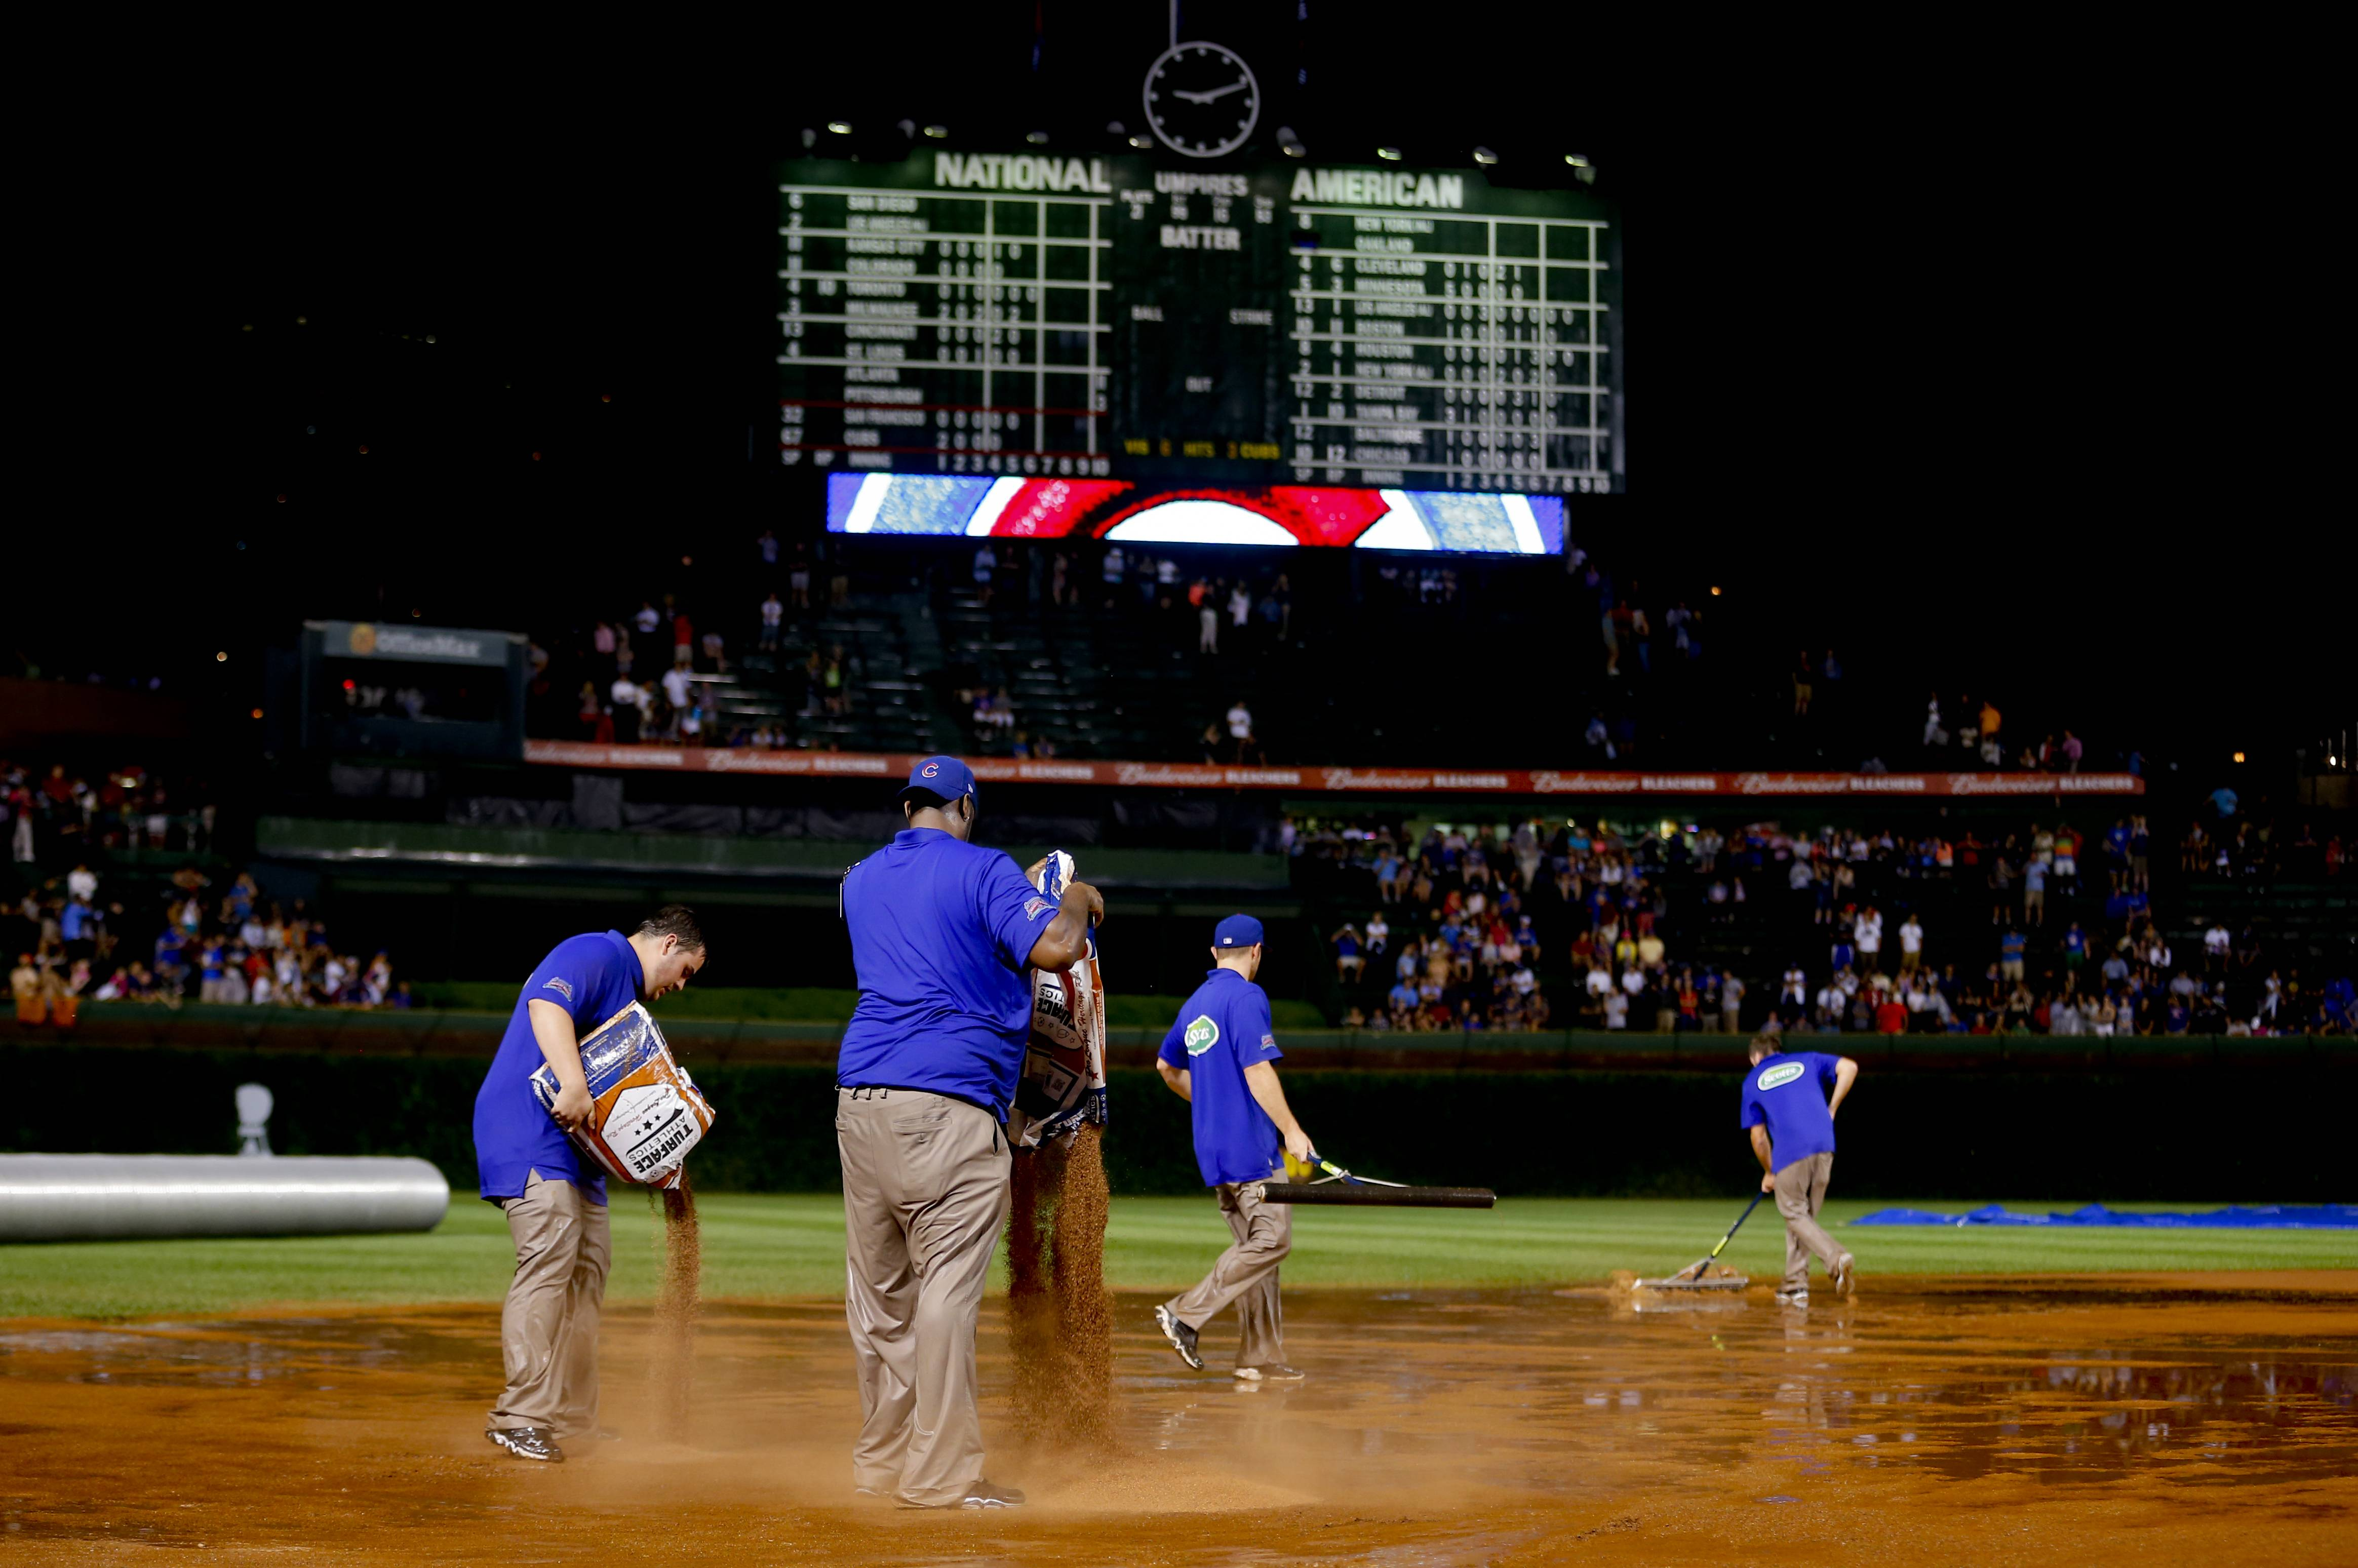 Giants win protest; rain-shortened game to resume